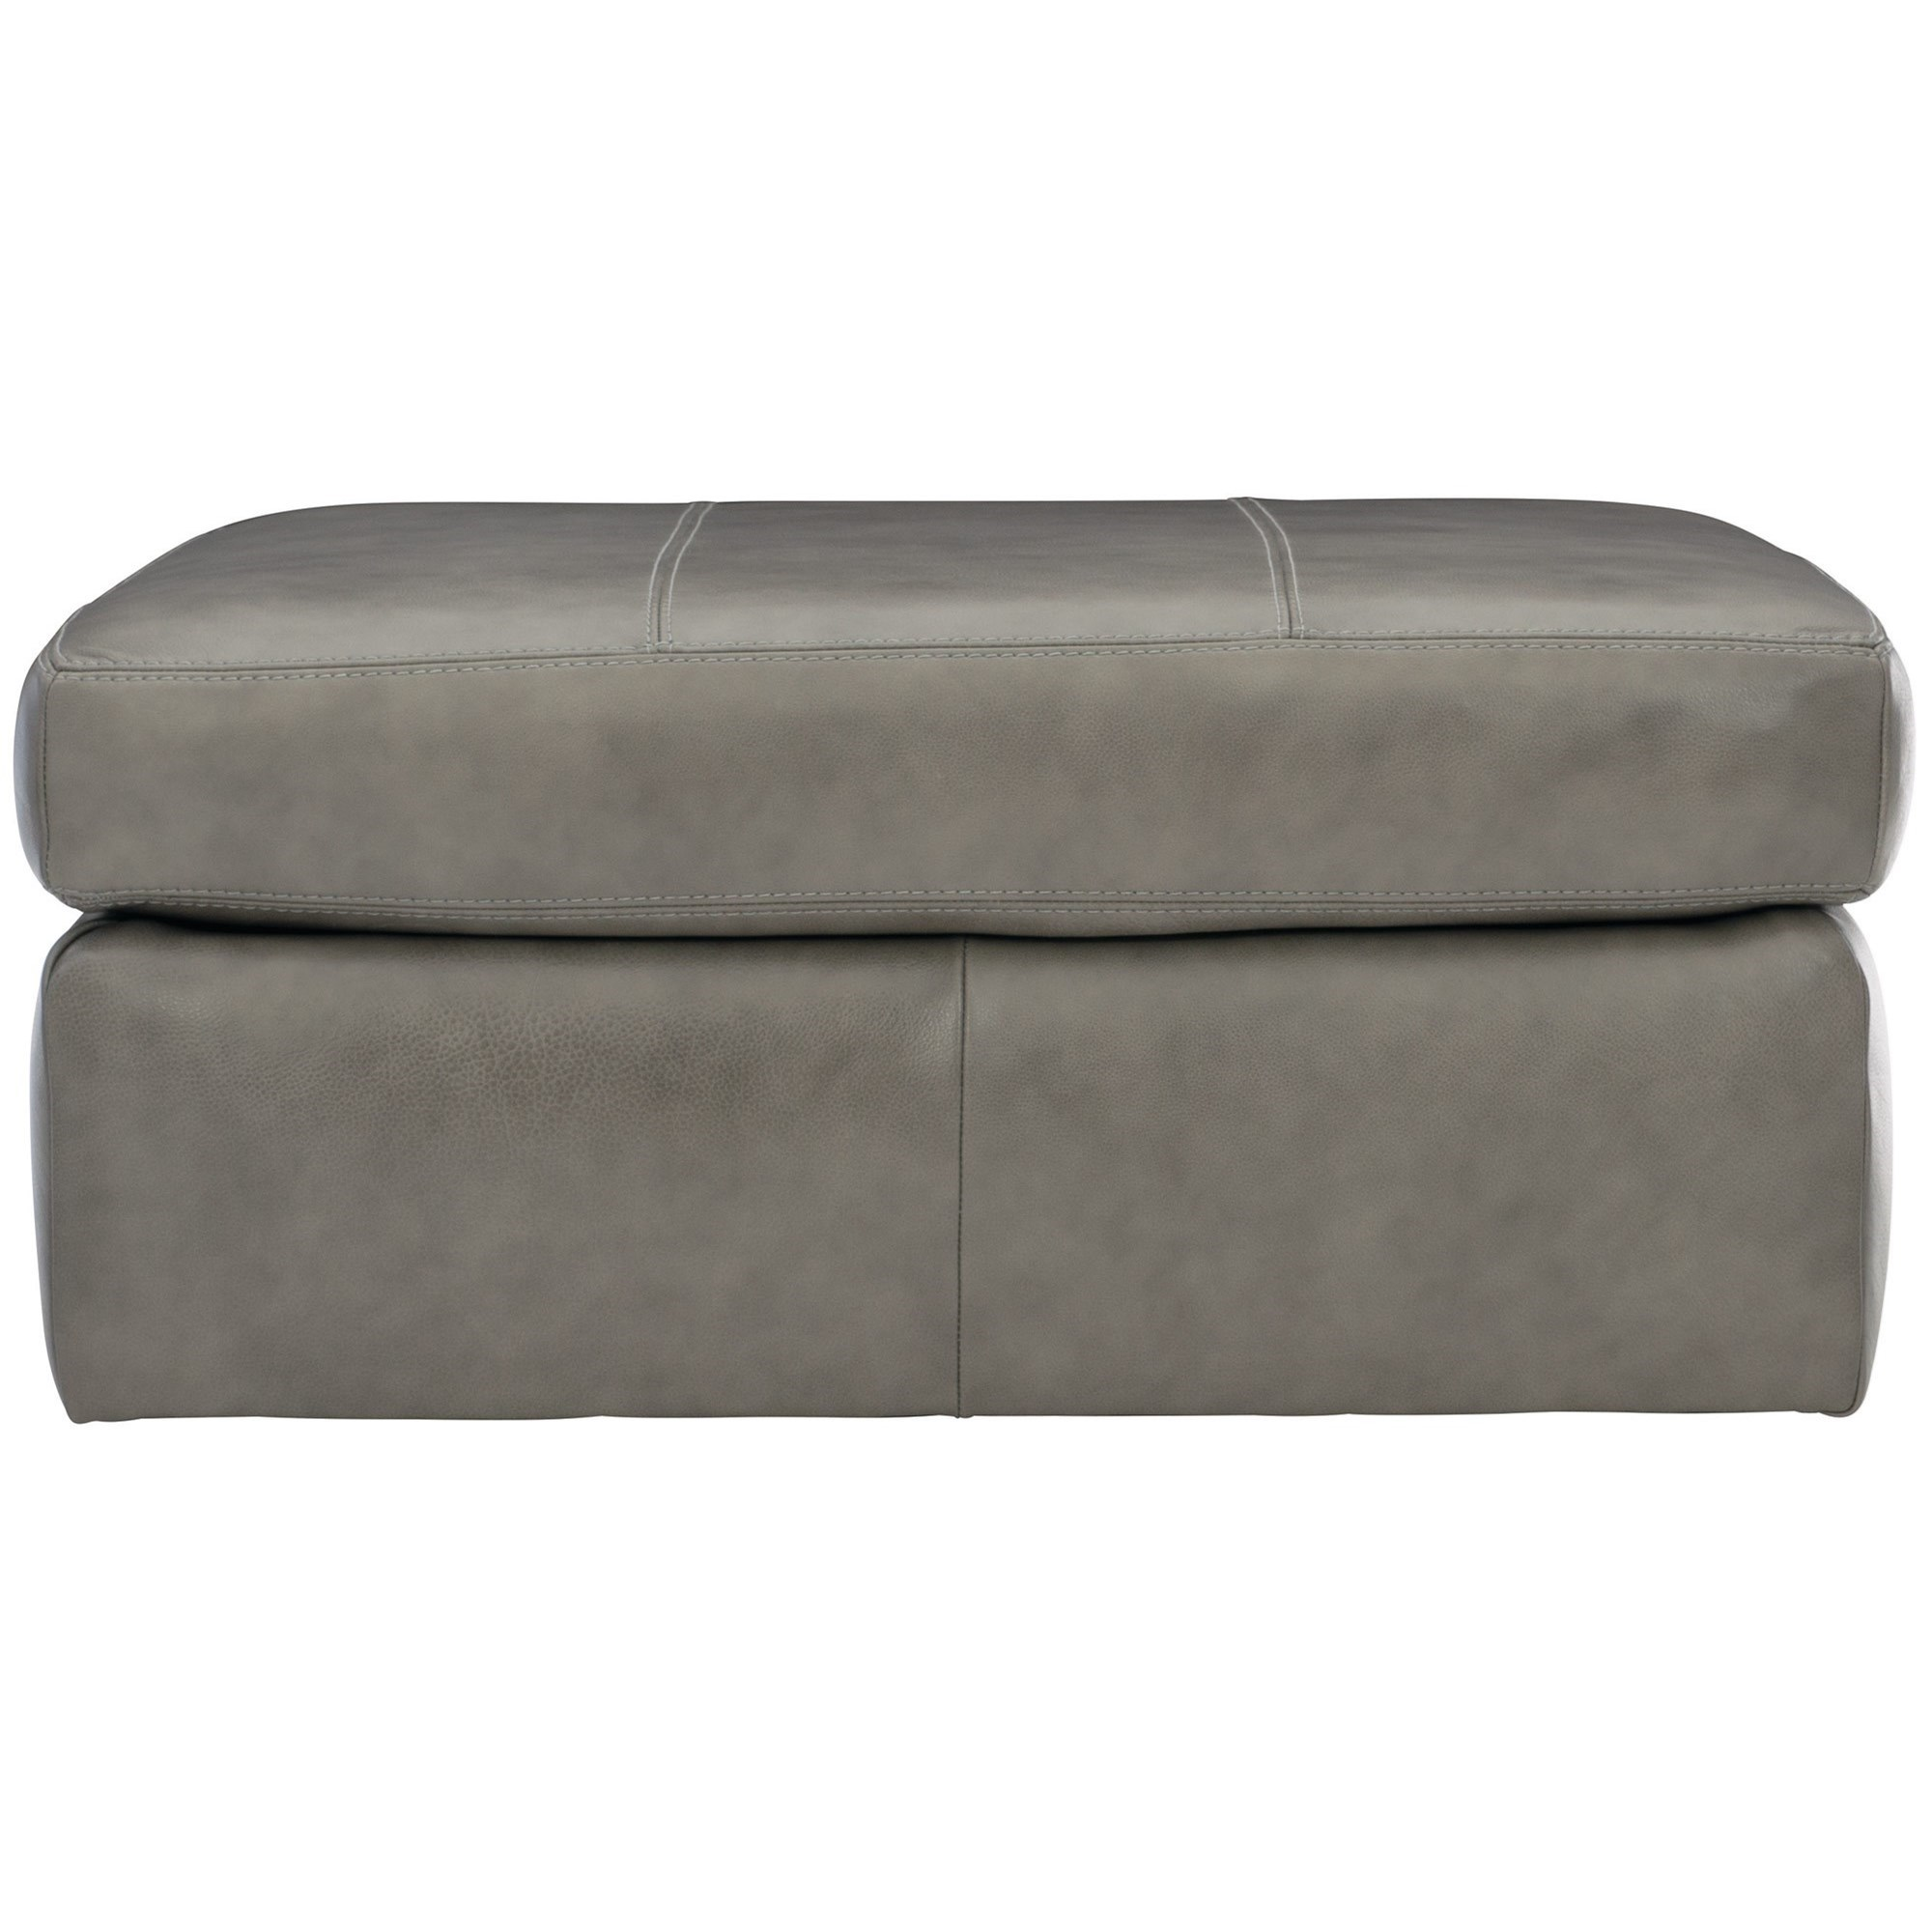 Stafford Ottoman by Bernhardt at Baer's Furniture